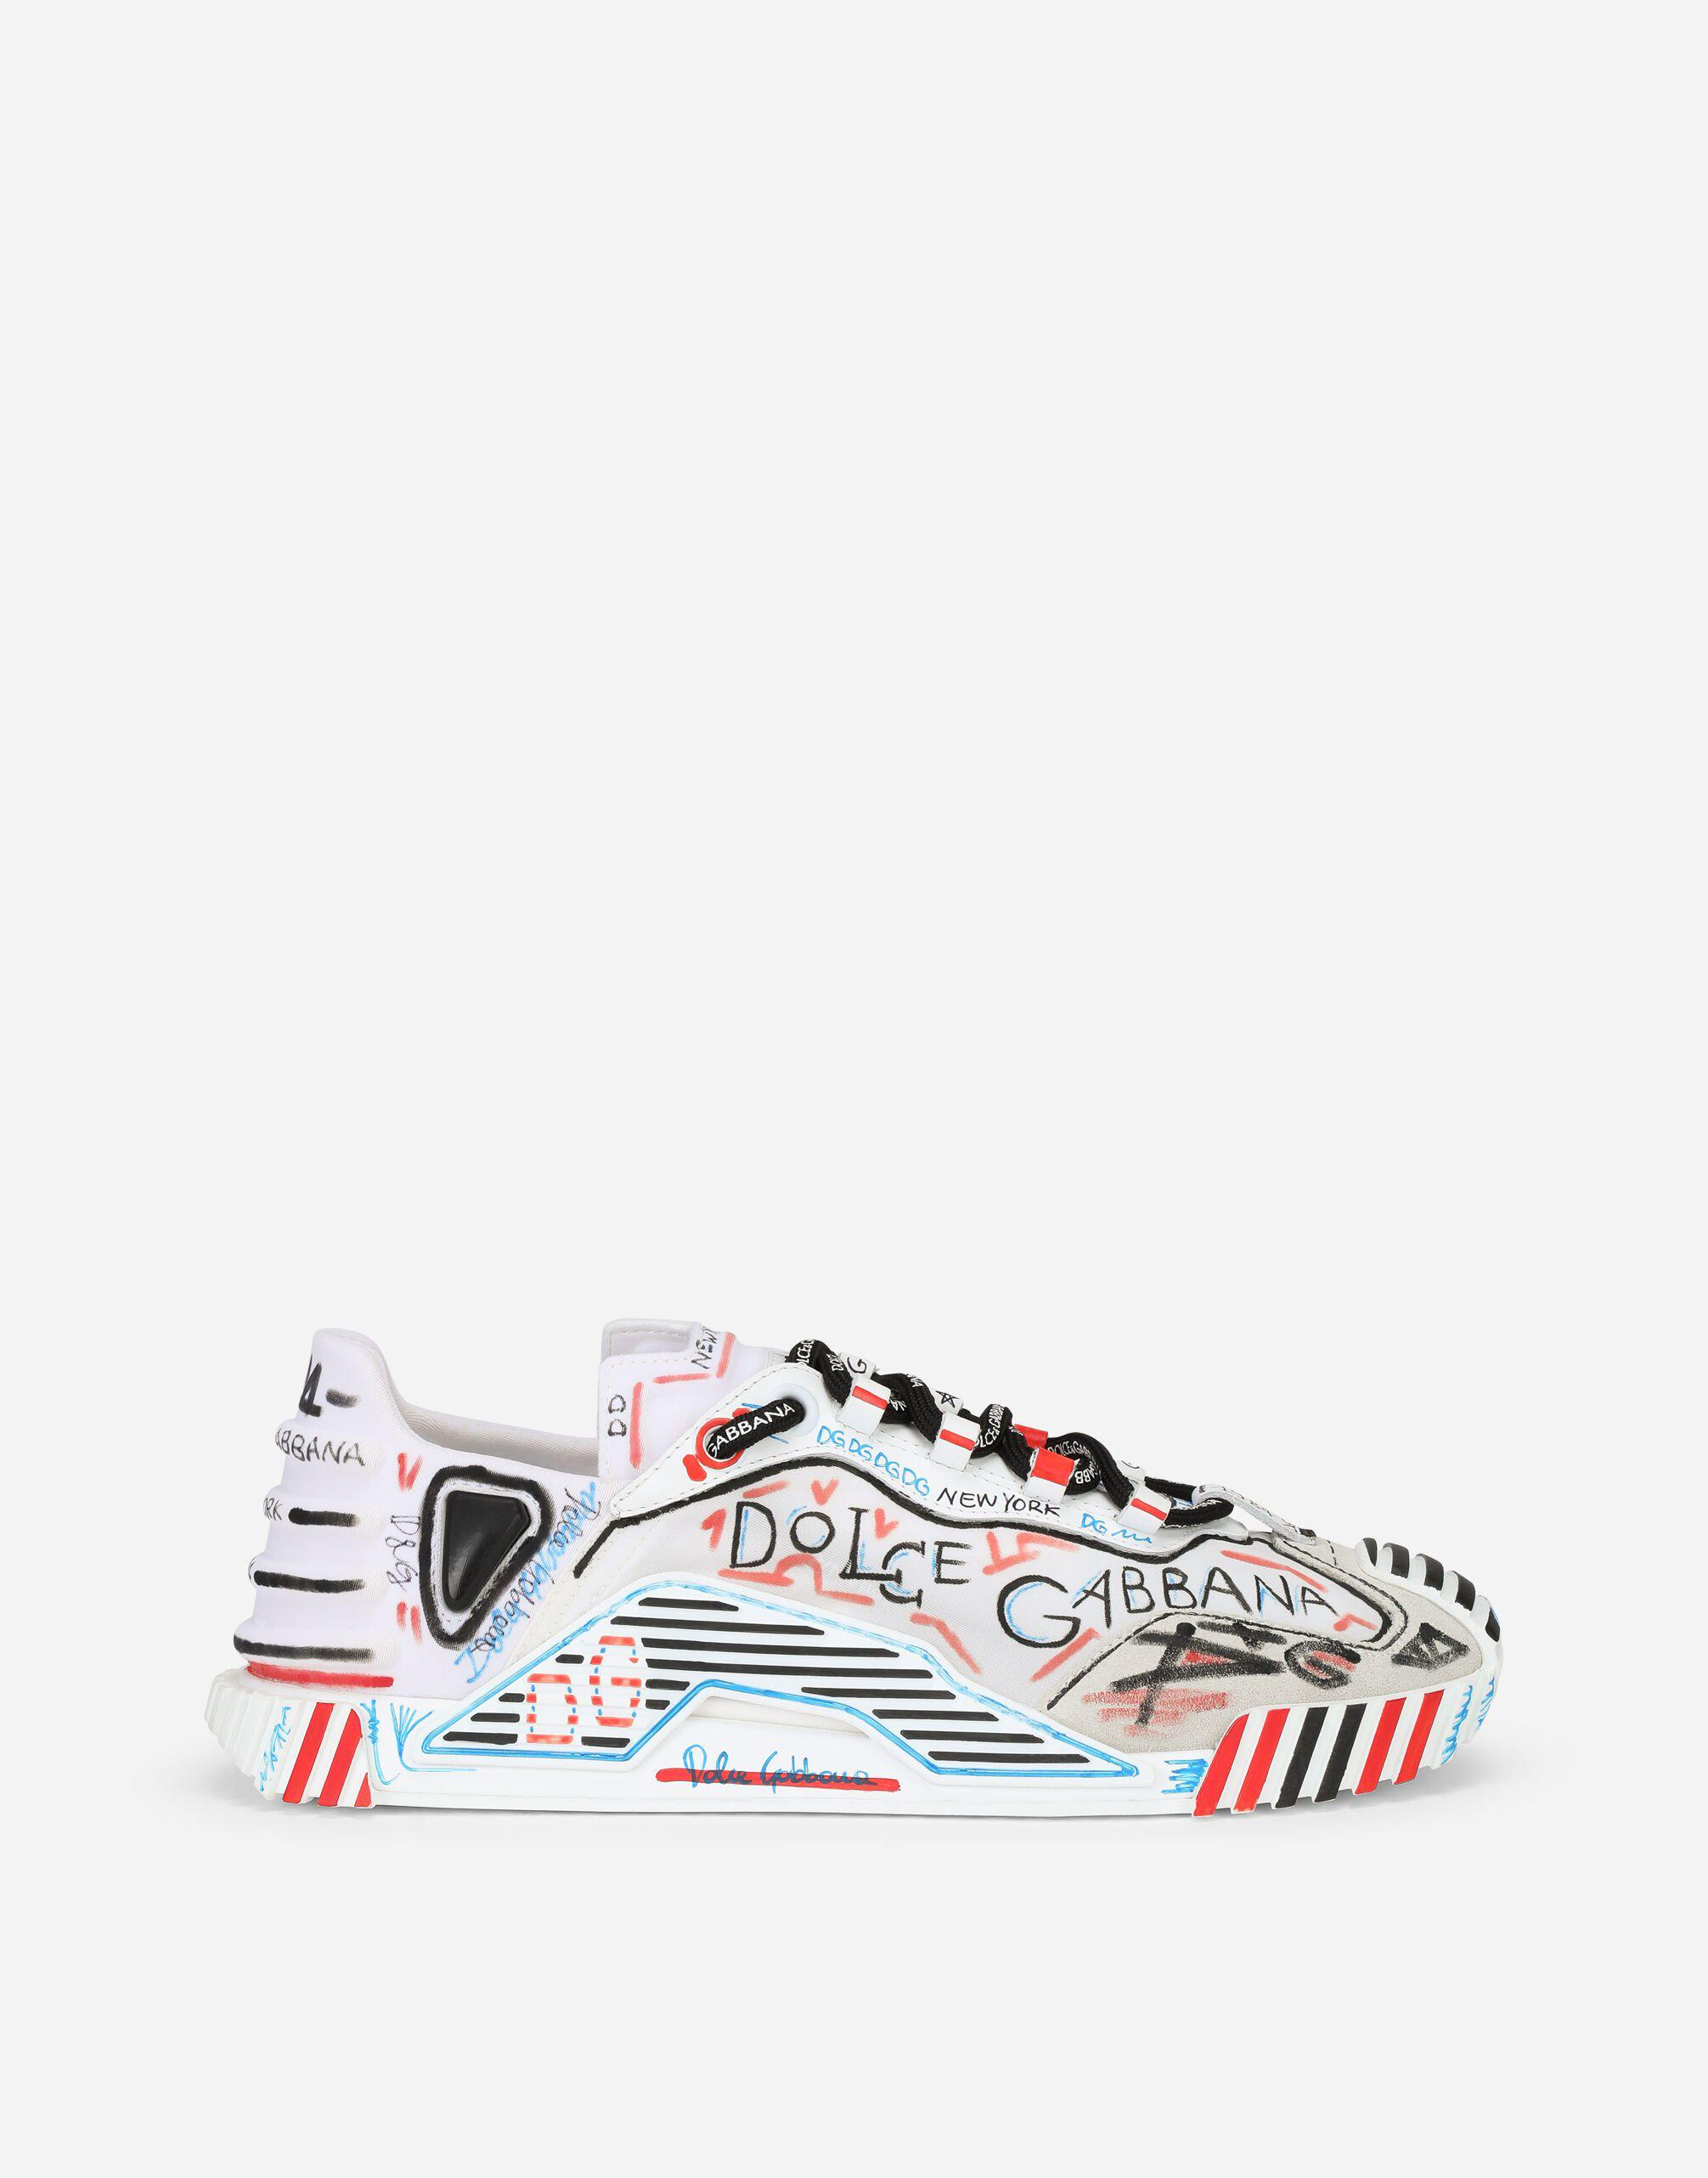 Mixed-materials New York NS1 slip-on sneakers